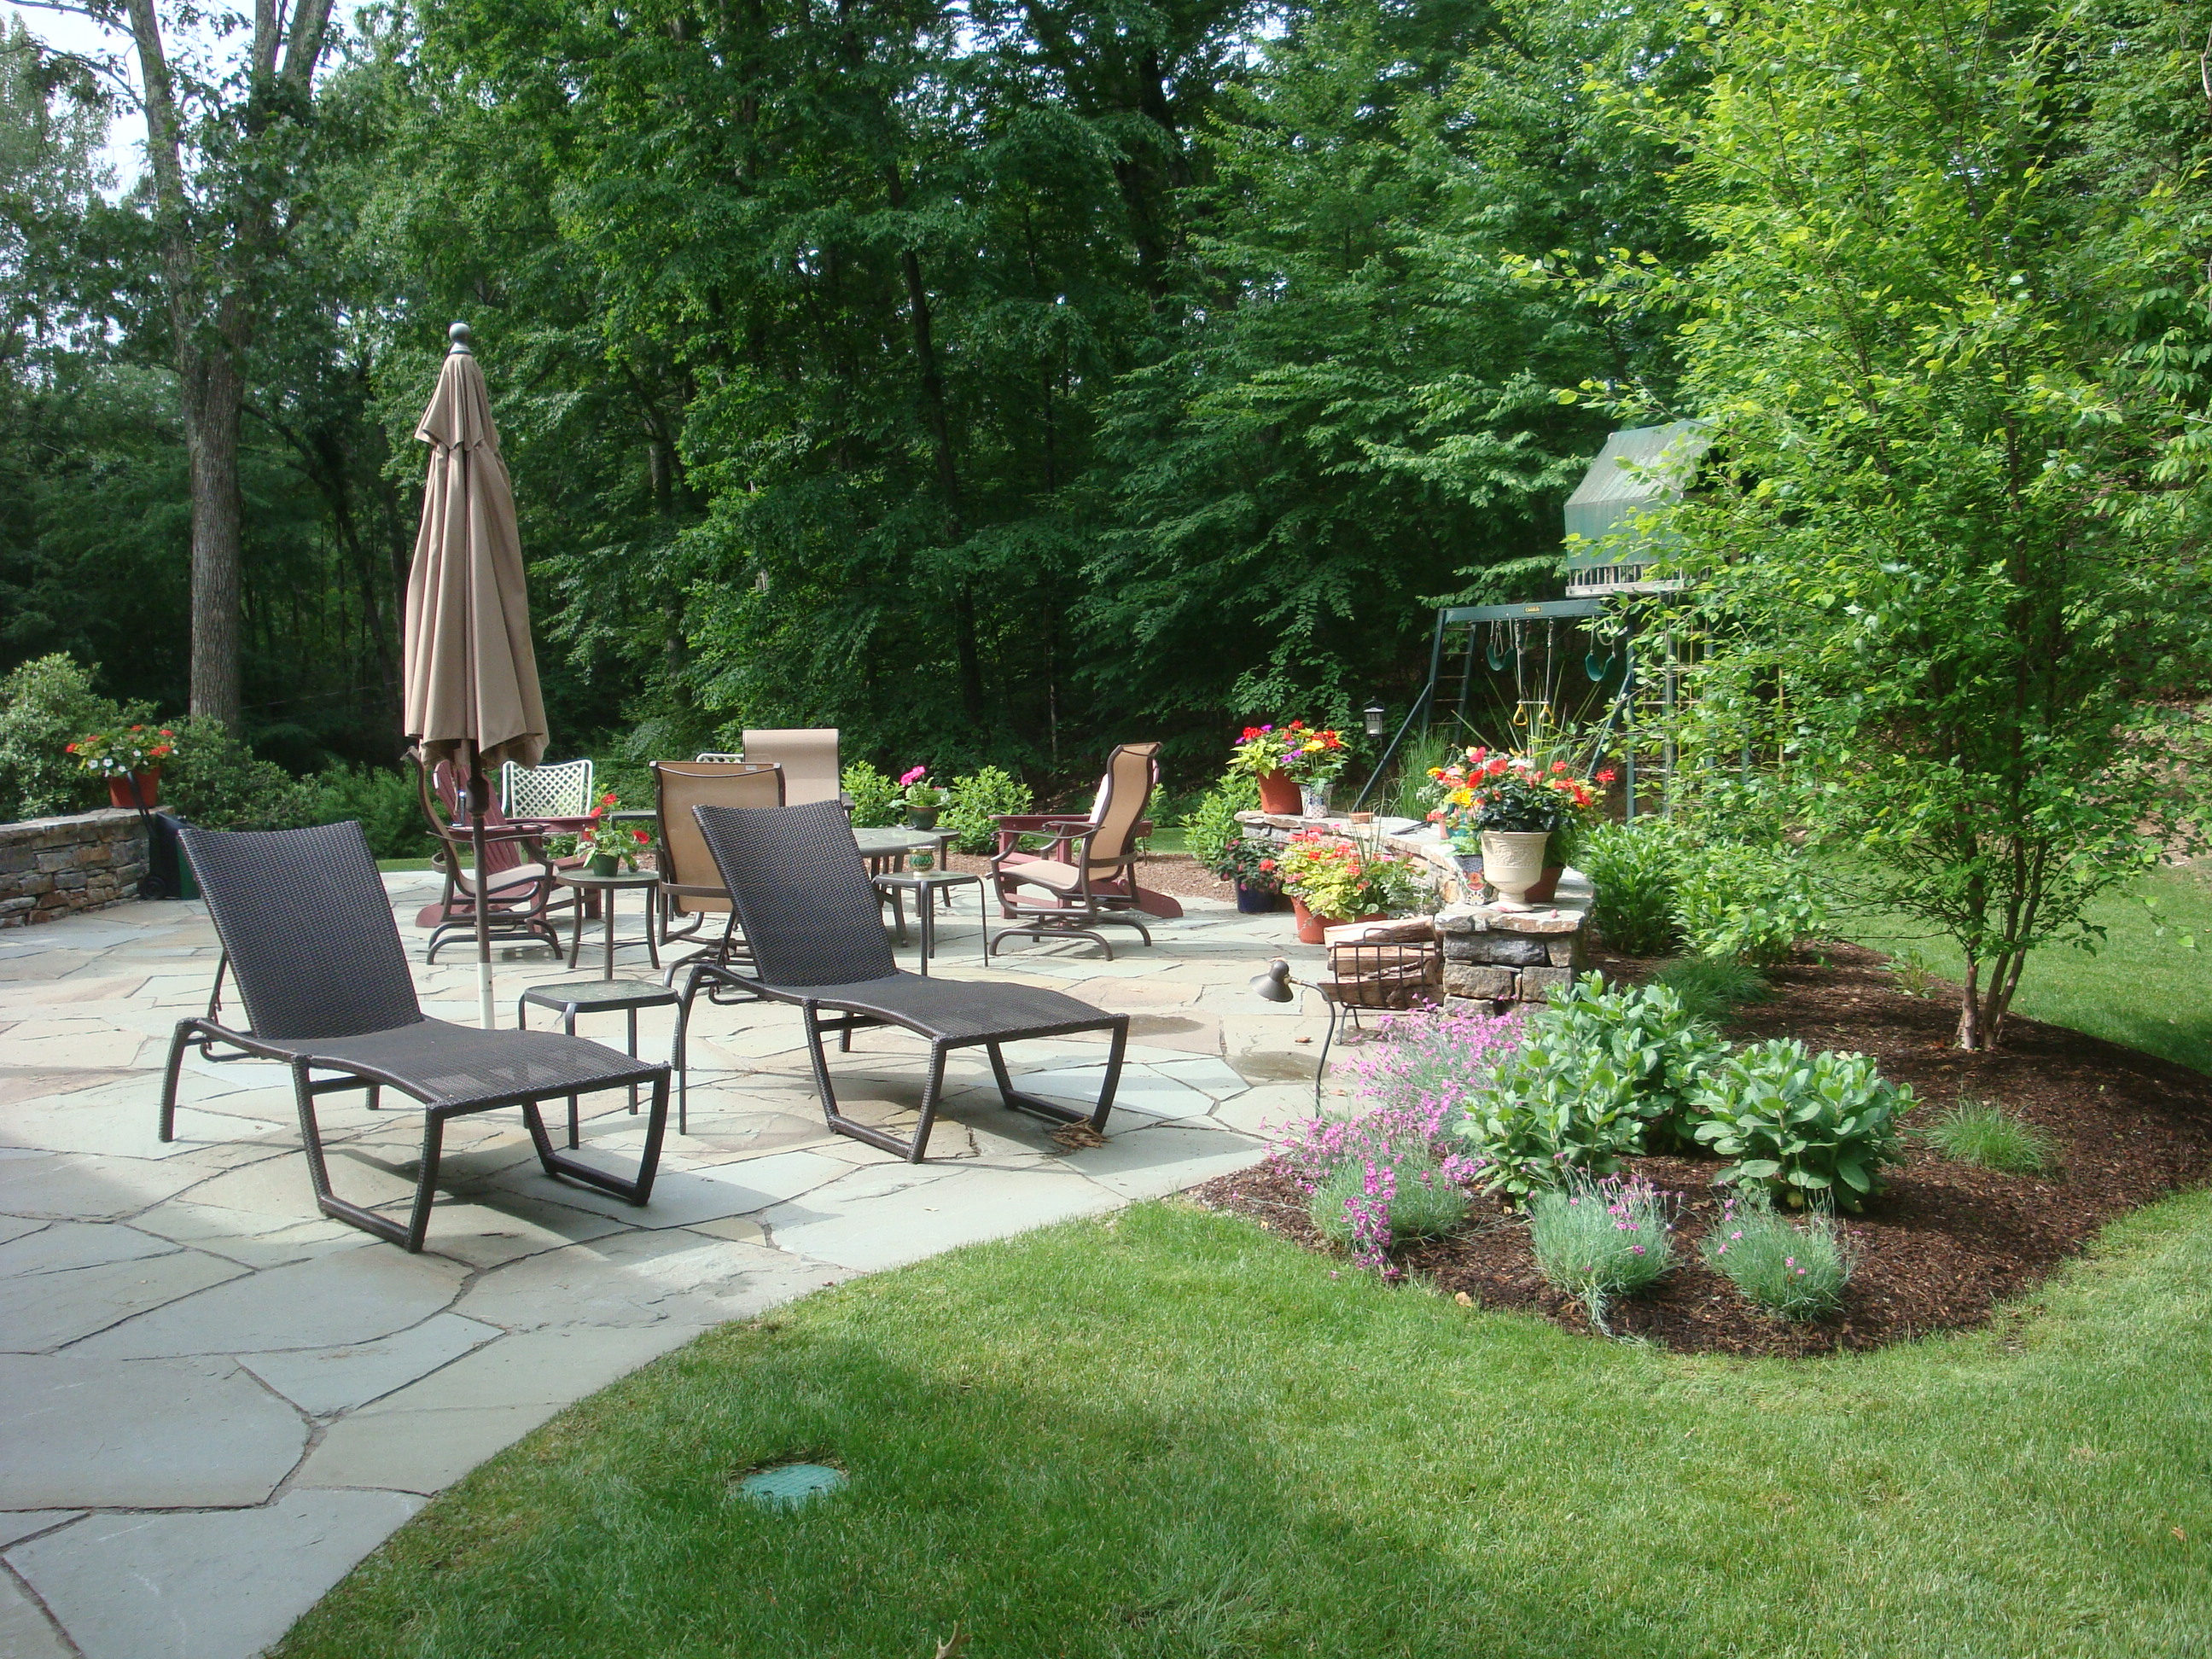 Patios garden designers roundtable for Garden patio designs